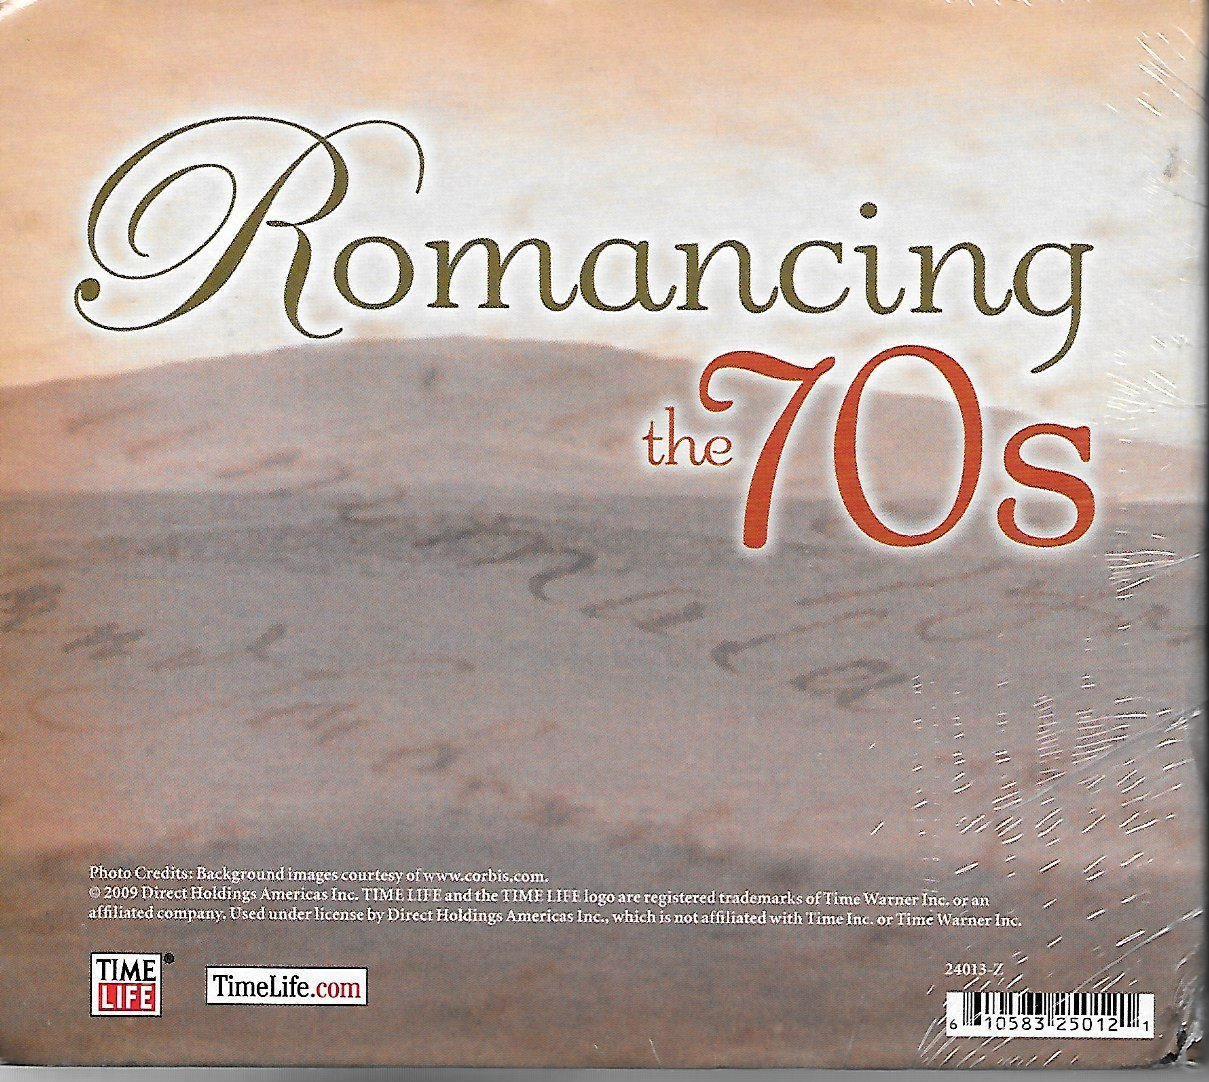 Romancing the Inventory cleanup selling sale 67% OFF of fixed price 70s